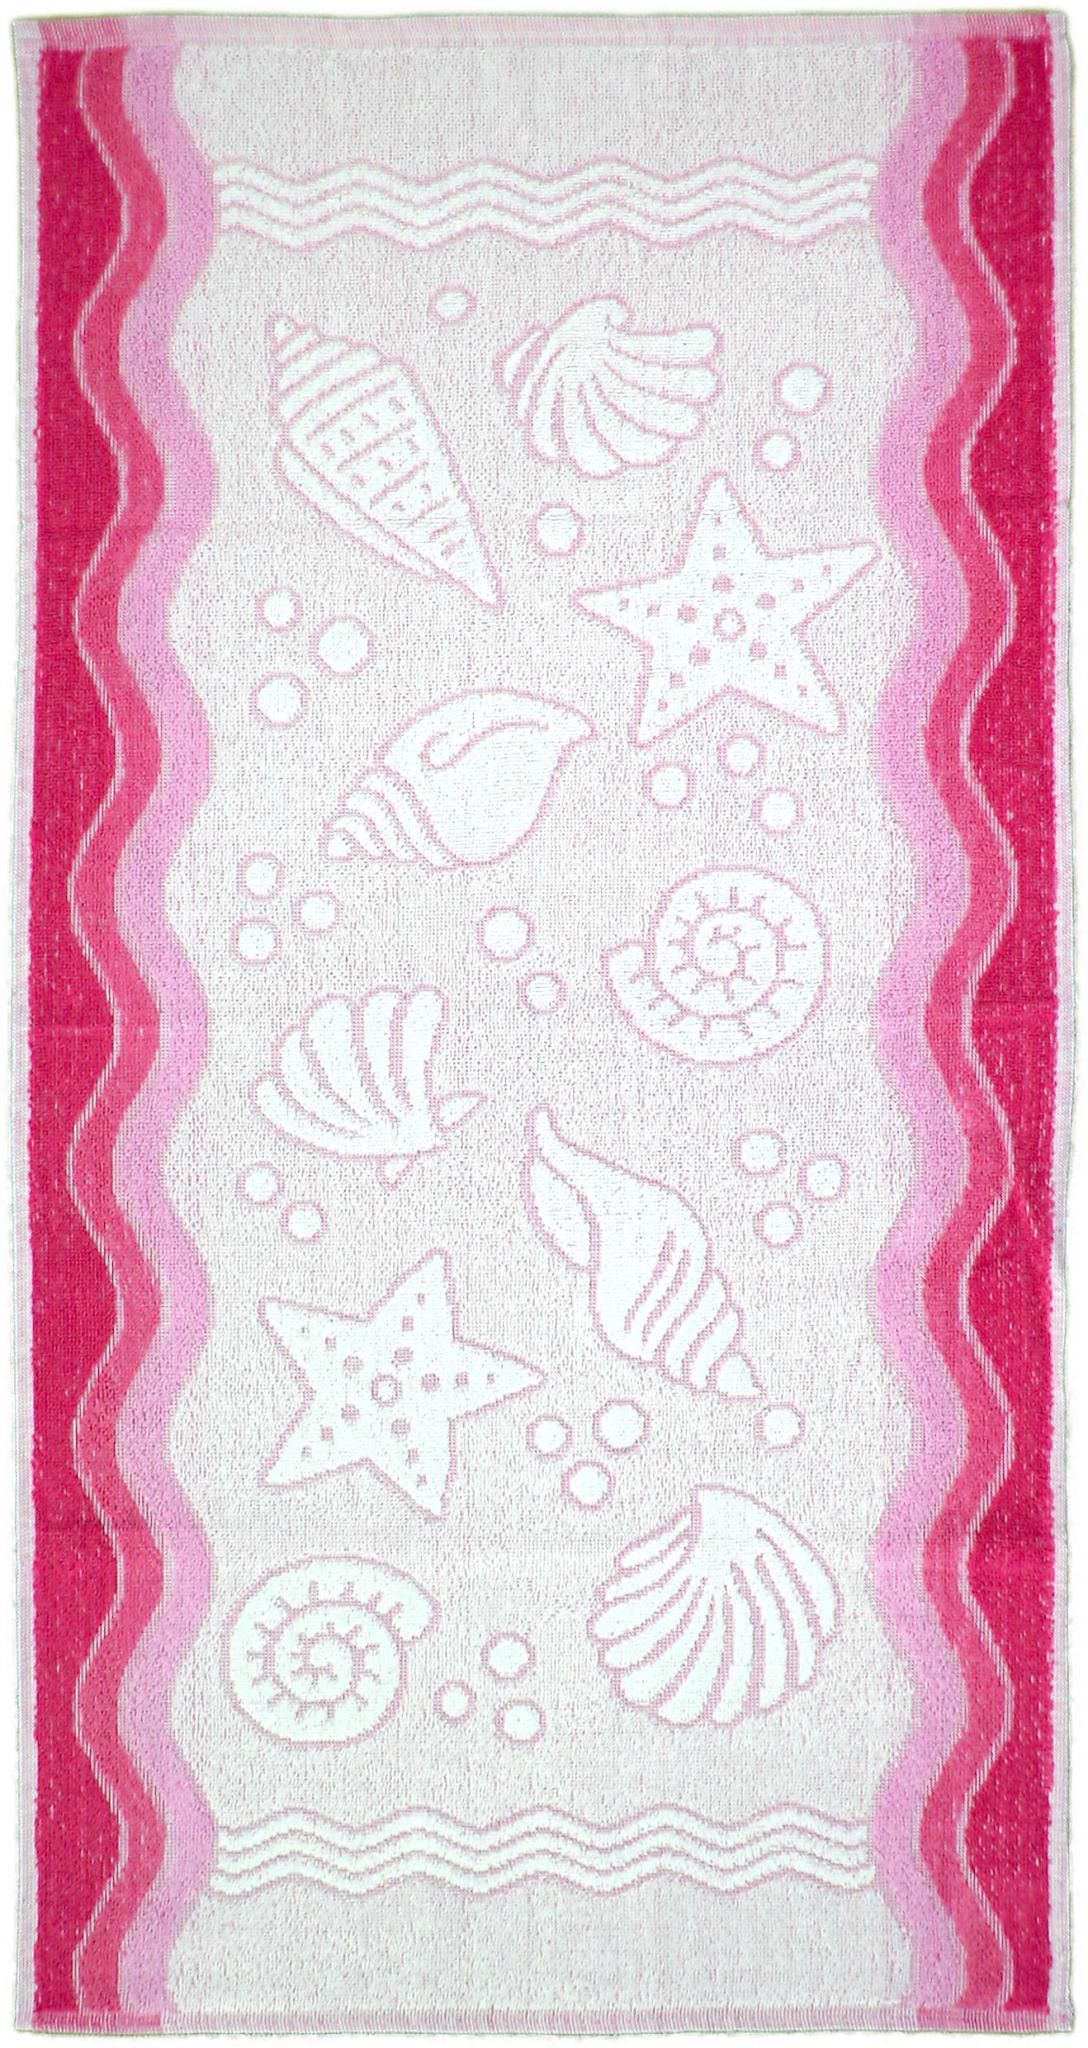 Ręcznik Flora Ocean - Różowy - 70x140 - Everday Collection - Greno